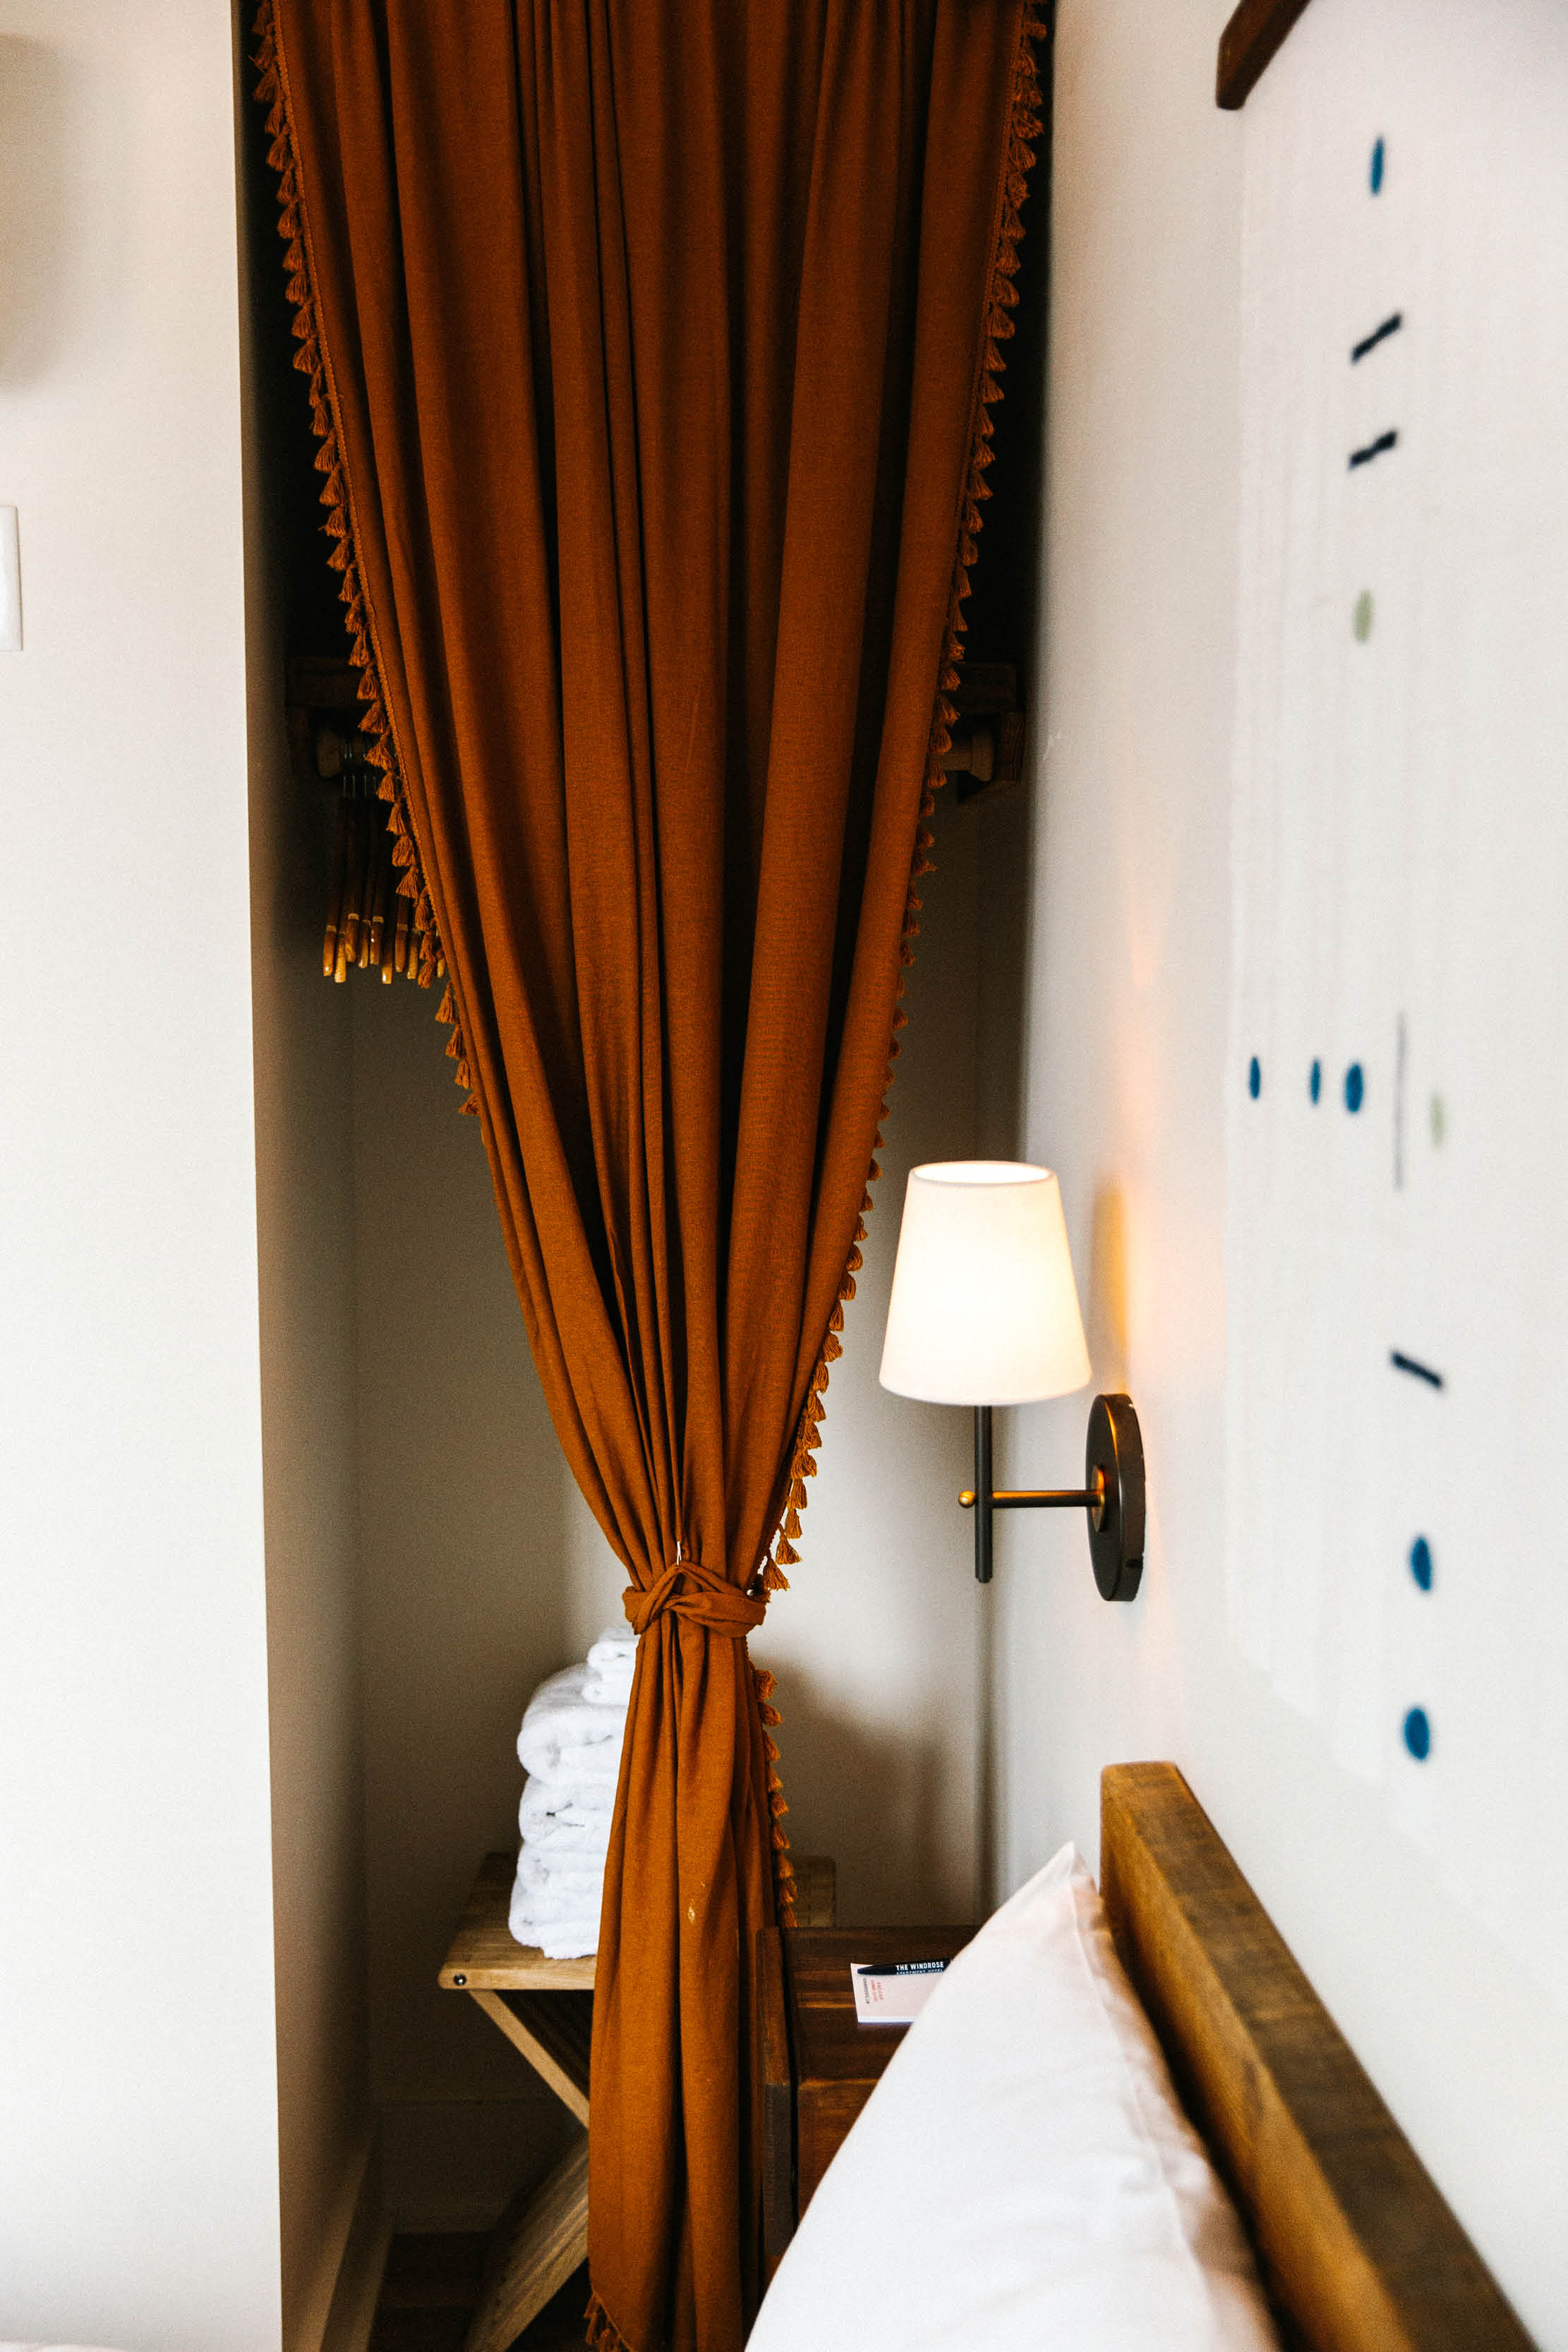 interiors photography / the windrose hotel